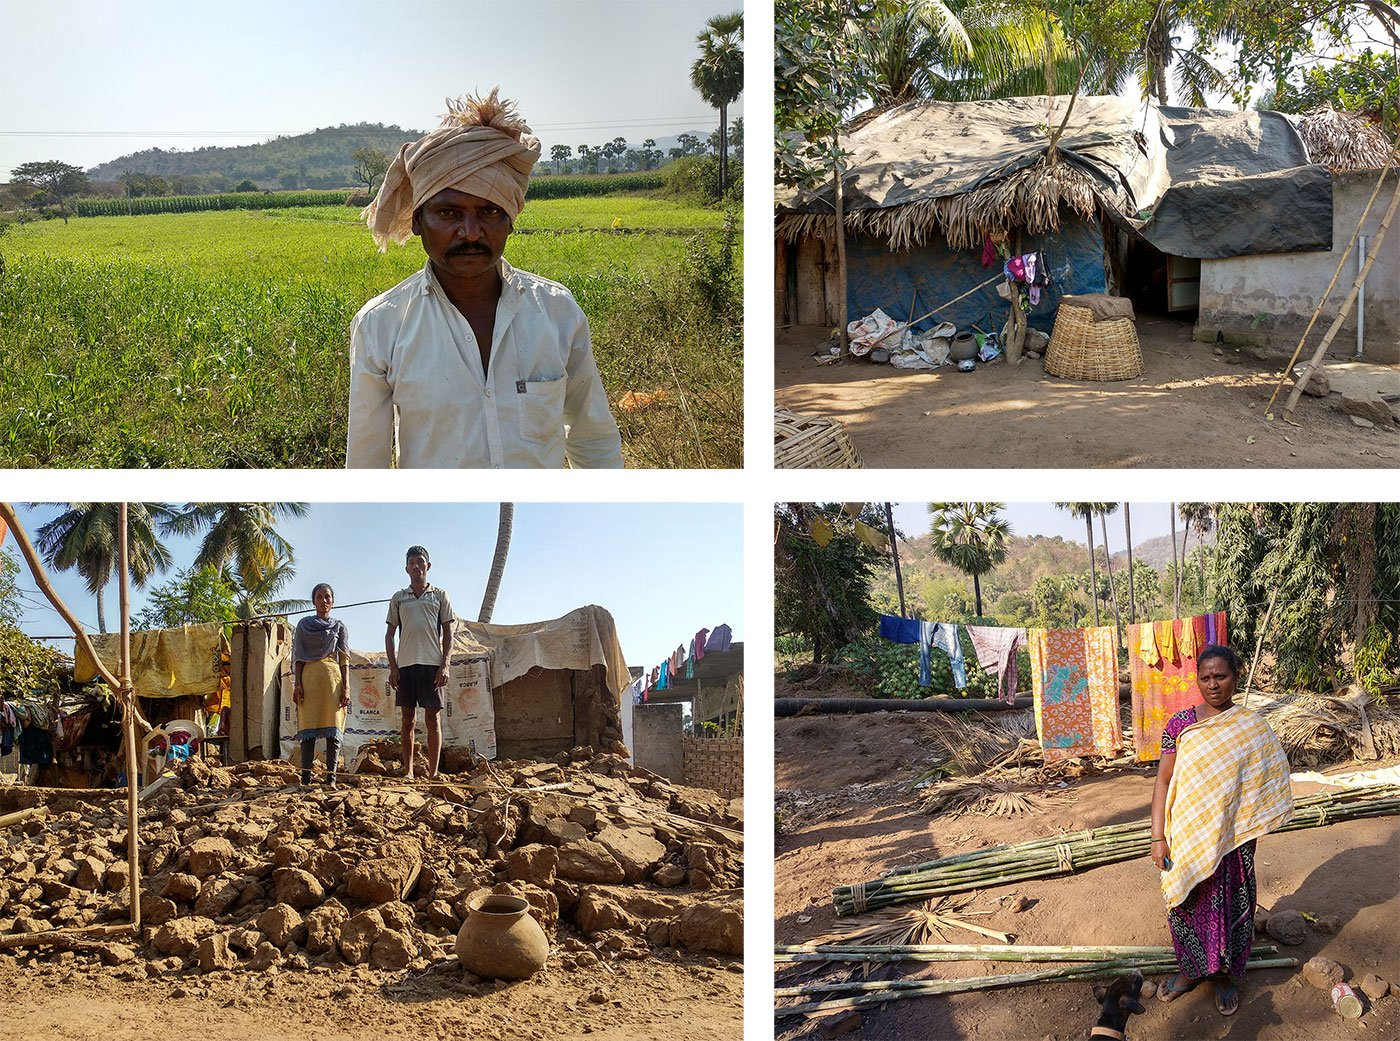 Tama Balaraju in front of his field which got whitewashed in October floods. He again started cultivating maize after the floods receded (top left).  Balaraju is living in this hut right now which he constructed after spending more than 45 days of cold winter nights right under the sky (top right). Mutyala Rao and his sister Prasanna Anjali stand on the top of the ruins of their house which got collapsed during the floods (bottom left).  Madakam Lakshmi in front of her demolished house. She is trying to build a new one but couldn't manage to set aside money for the same. So, she is living on the top of the terrace of the adjacent building (bottom right)